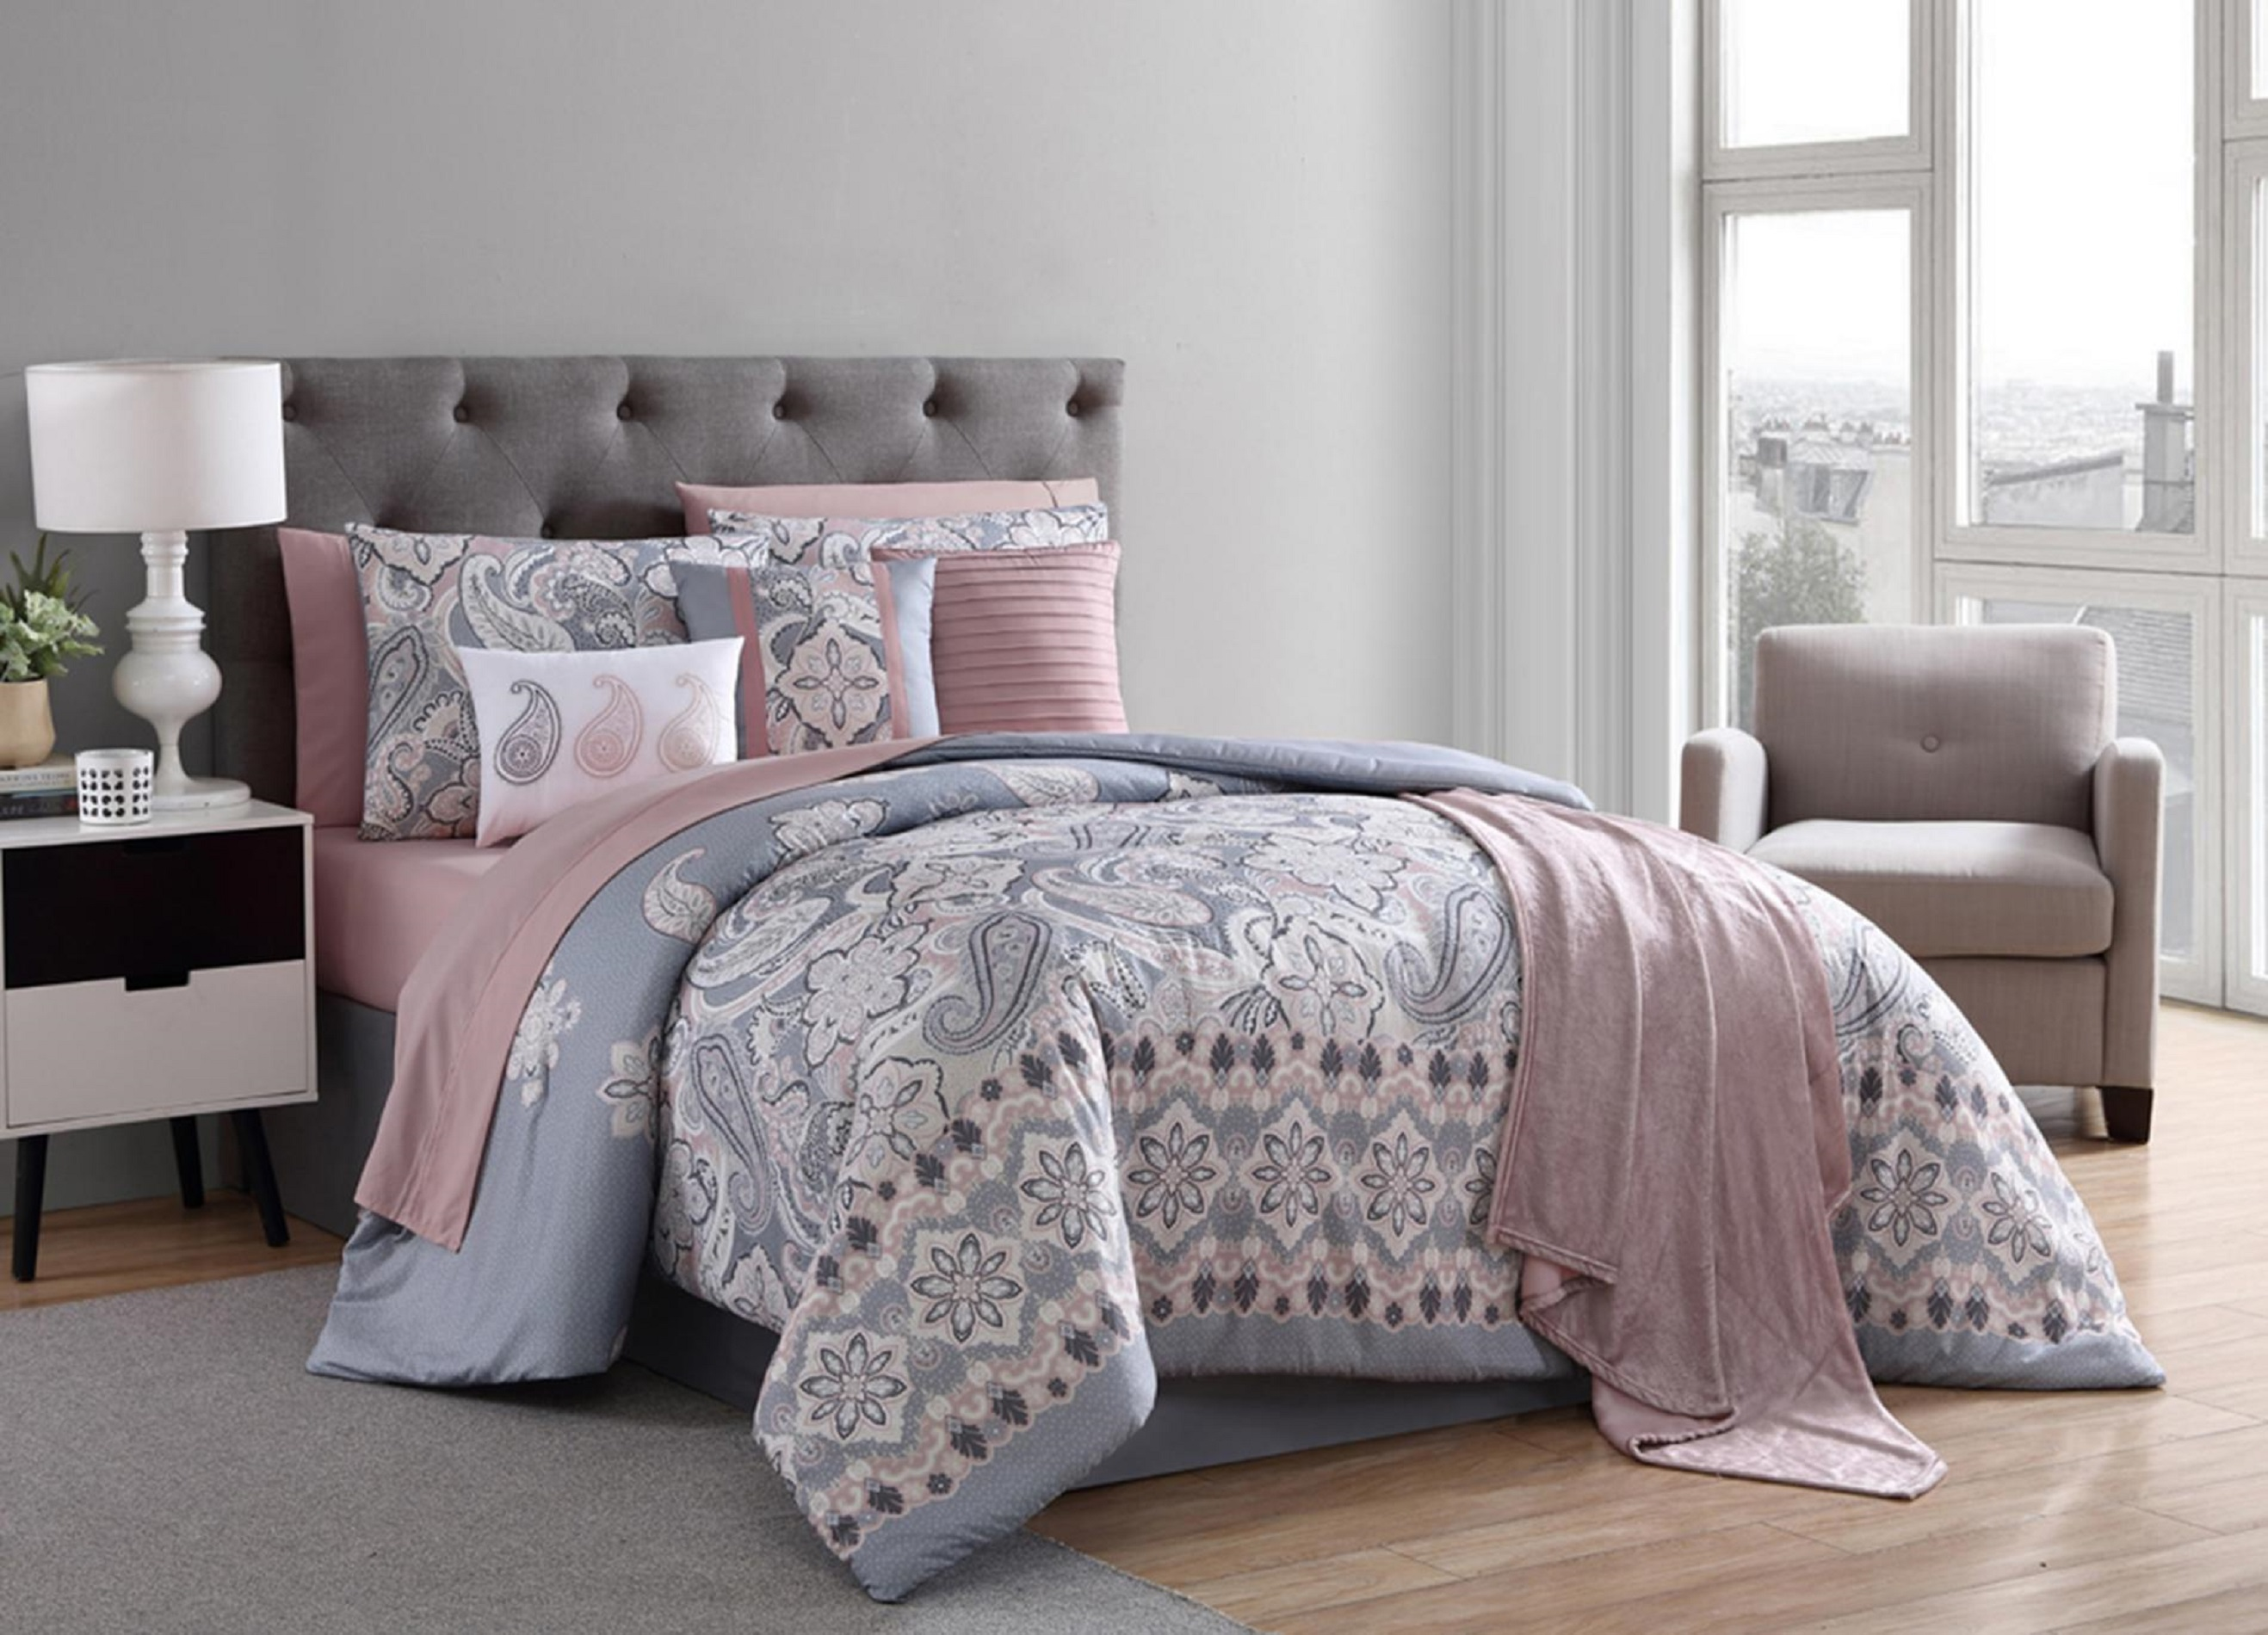 Essential Home 12pc. Comforter Set U0026#8211; Gray And Blush Paisley